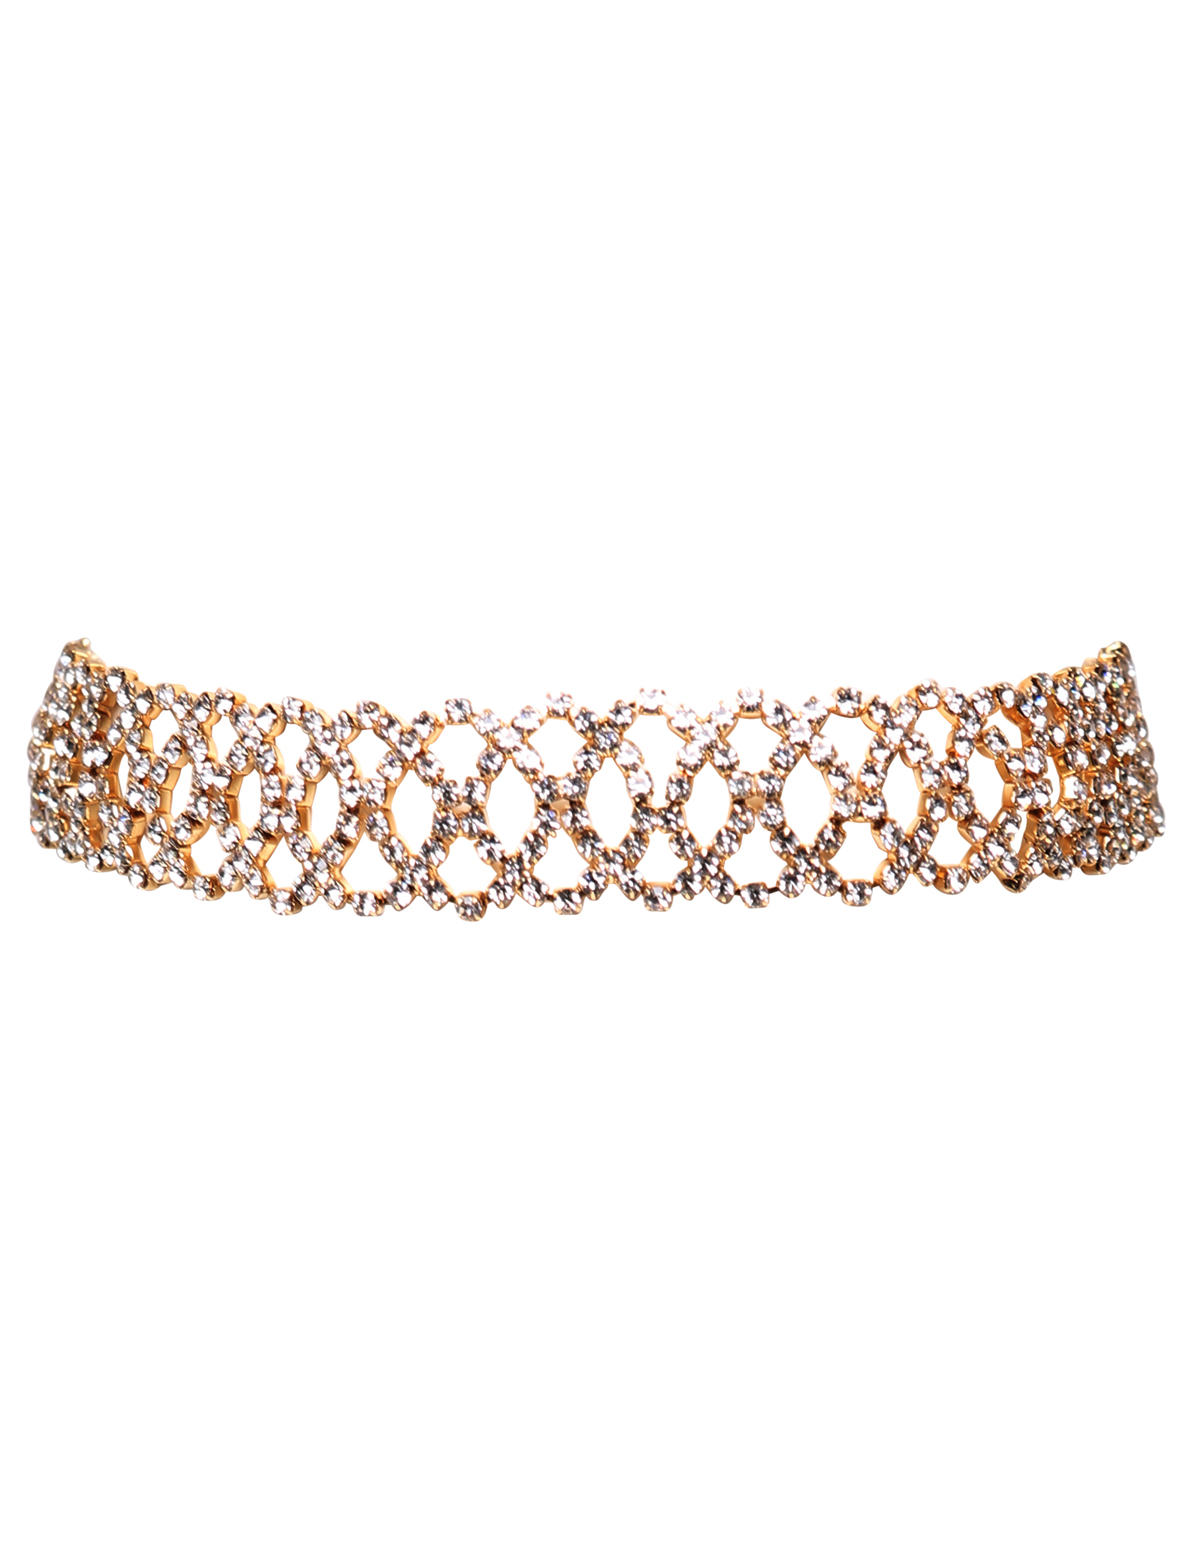 Image of Attention Diamante Chain Detail Choker In Gold